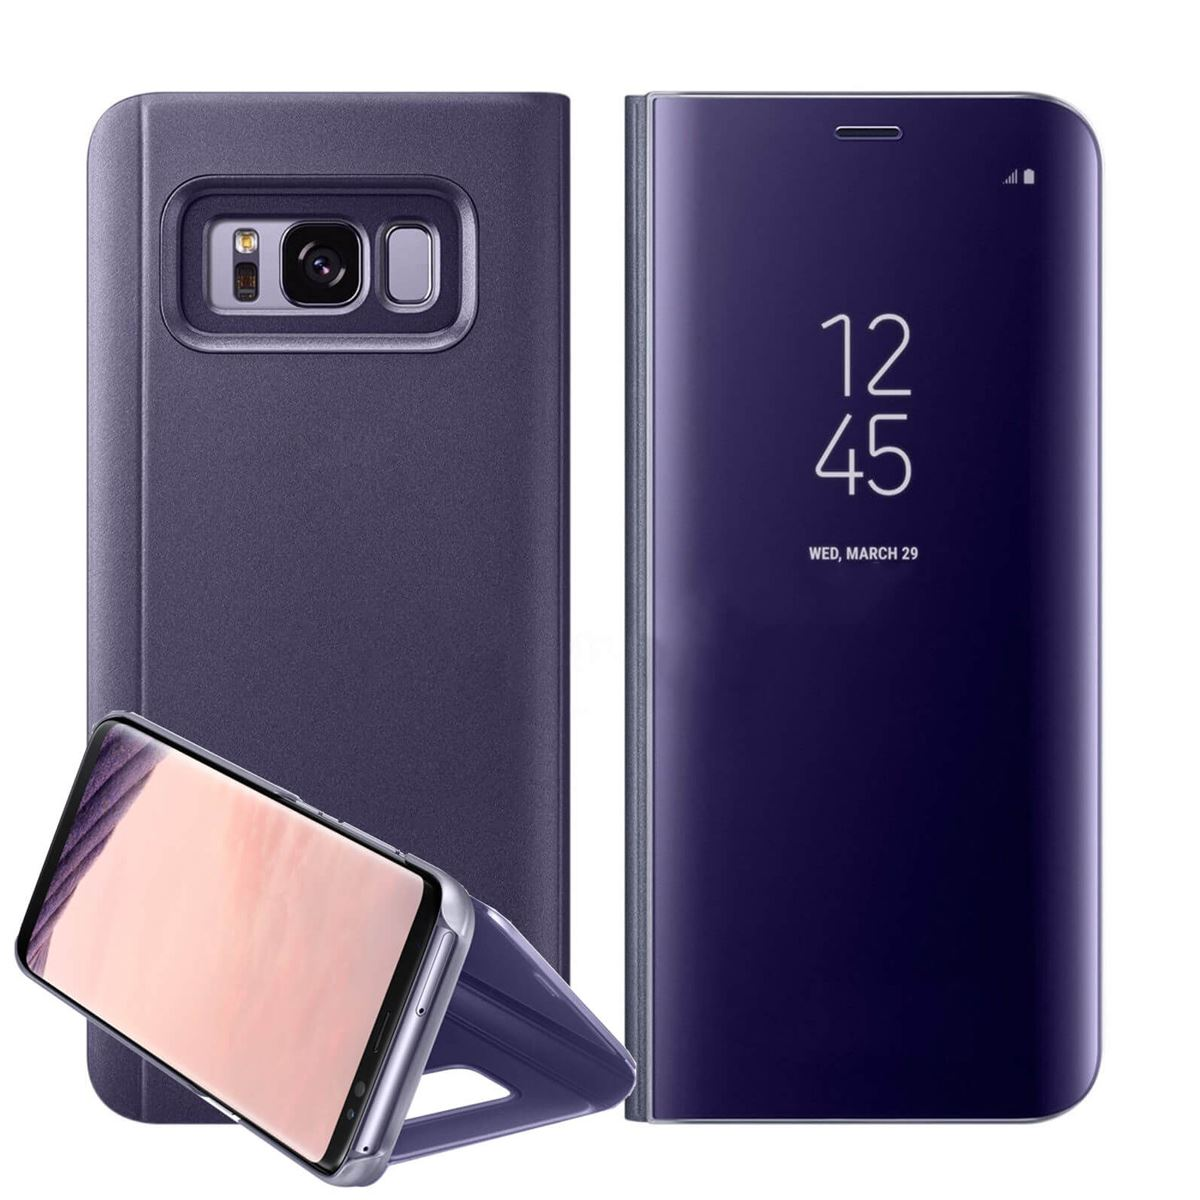 New-Samsung-Galaxy-S10-S9-S8-Smart-View-Mirror-Leather-Flip-Stand-Case-Cover thumbnail 68